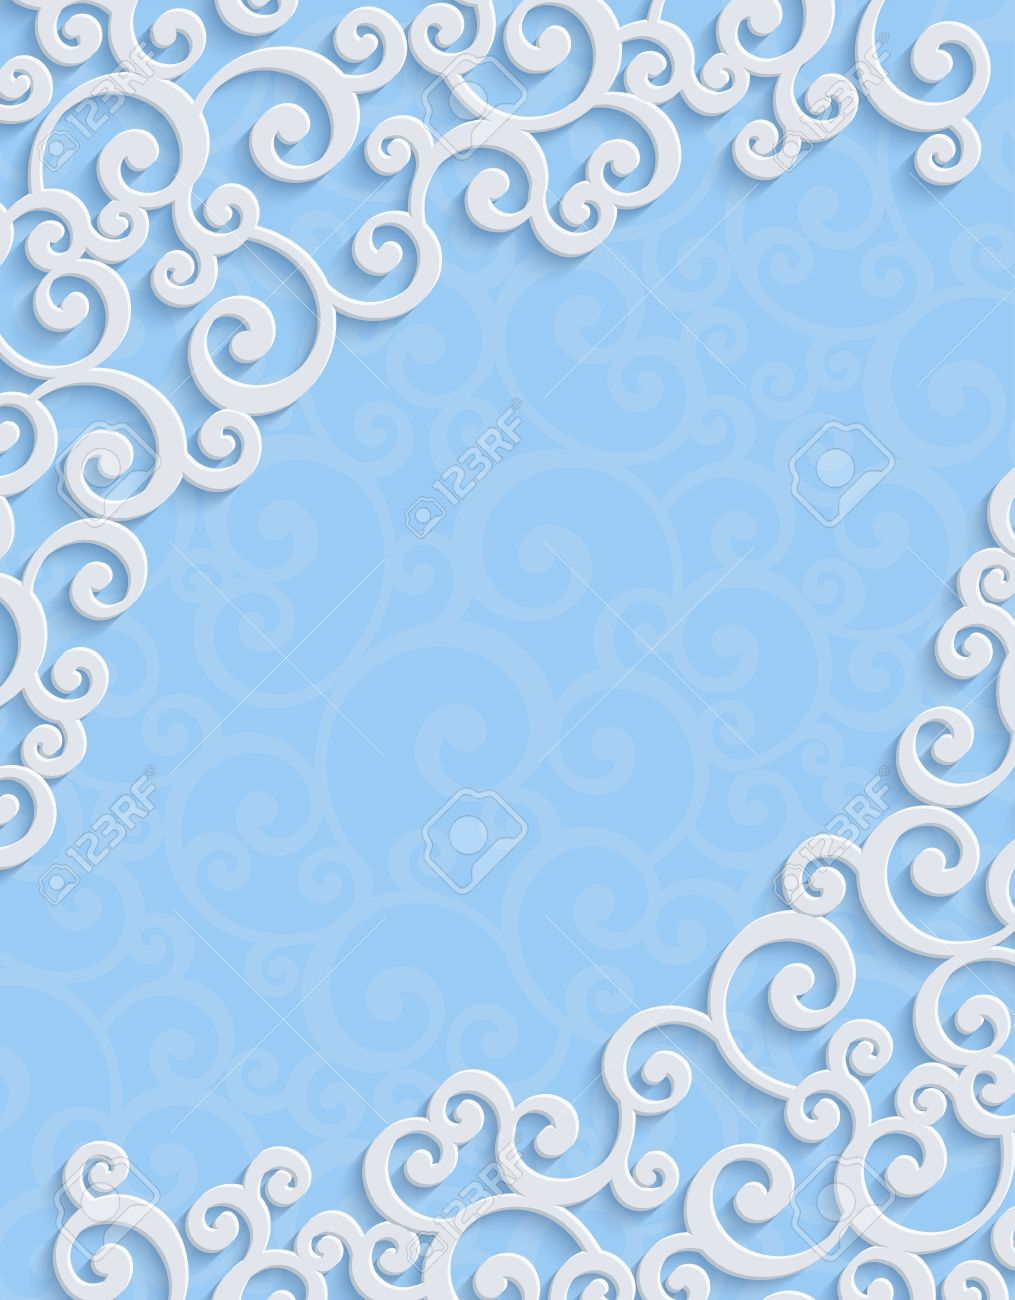 blue d floral swirl vertical background with curl pattern for, invitation samples